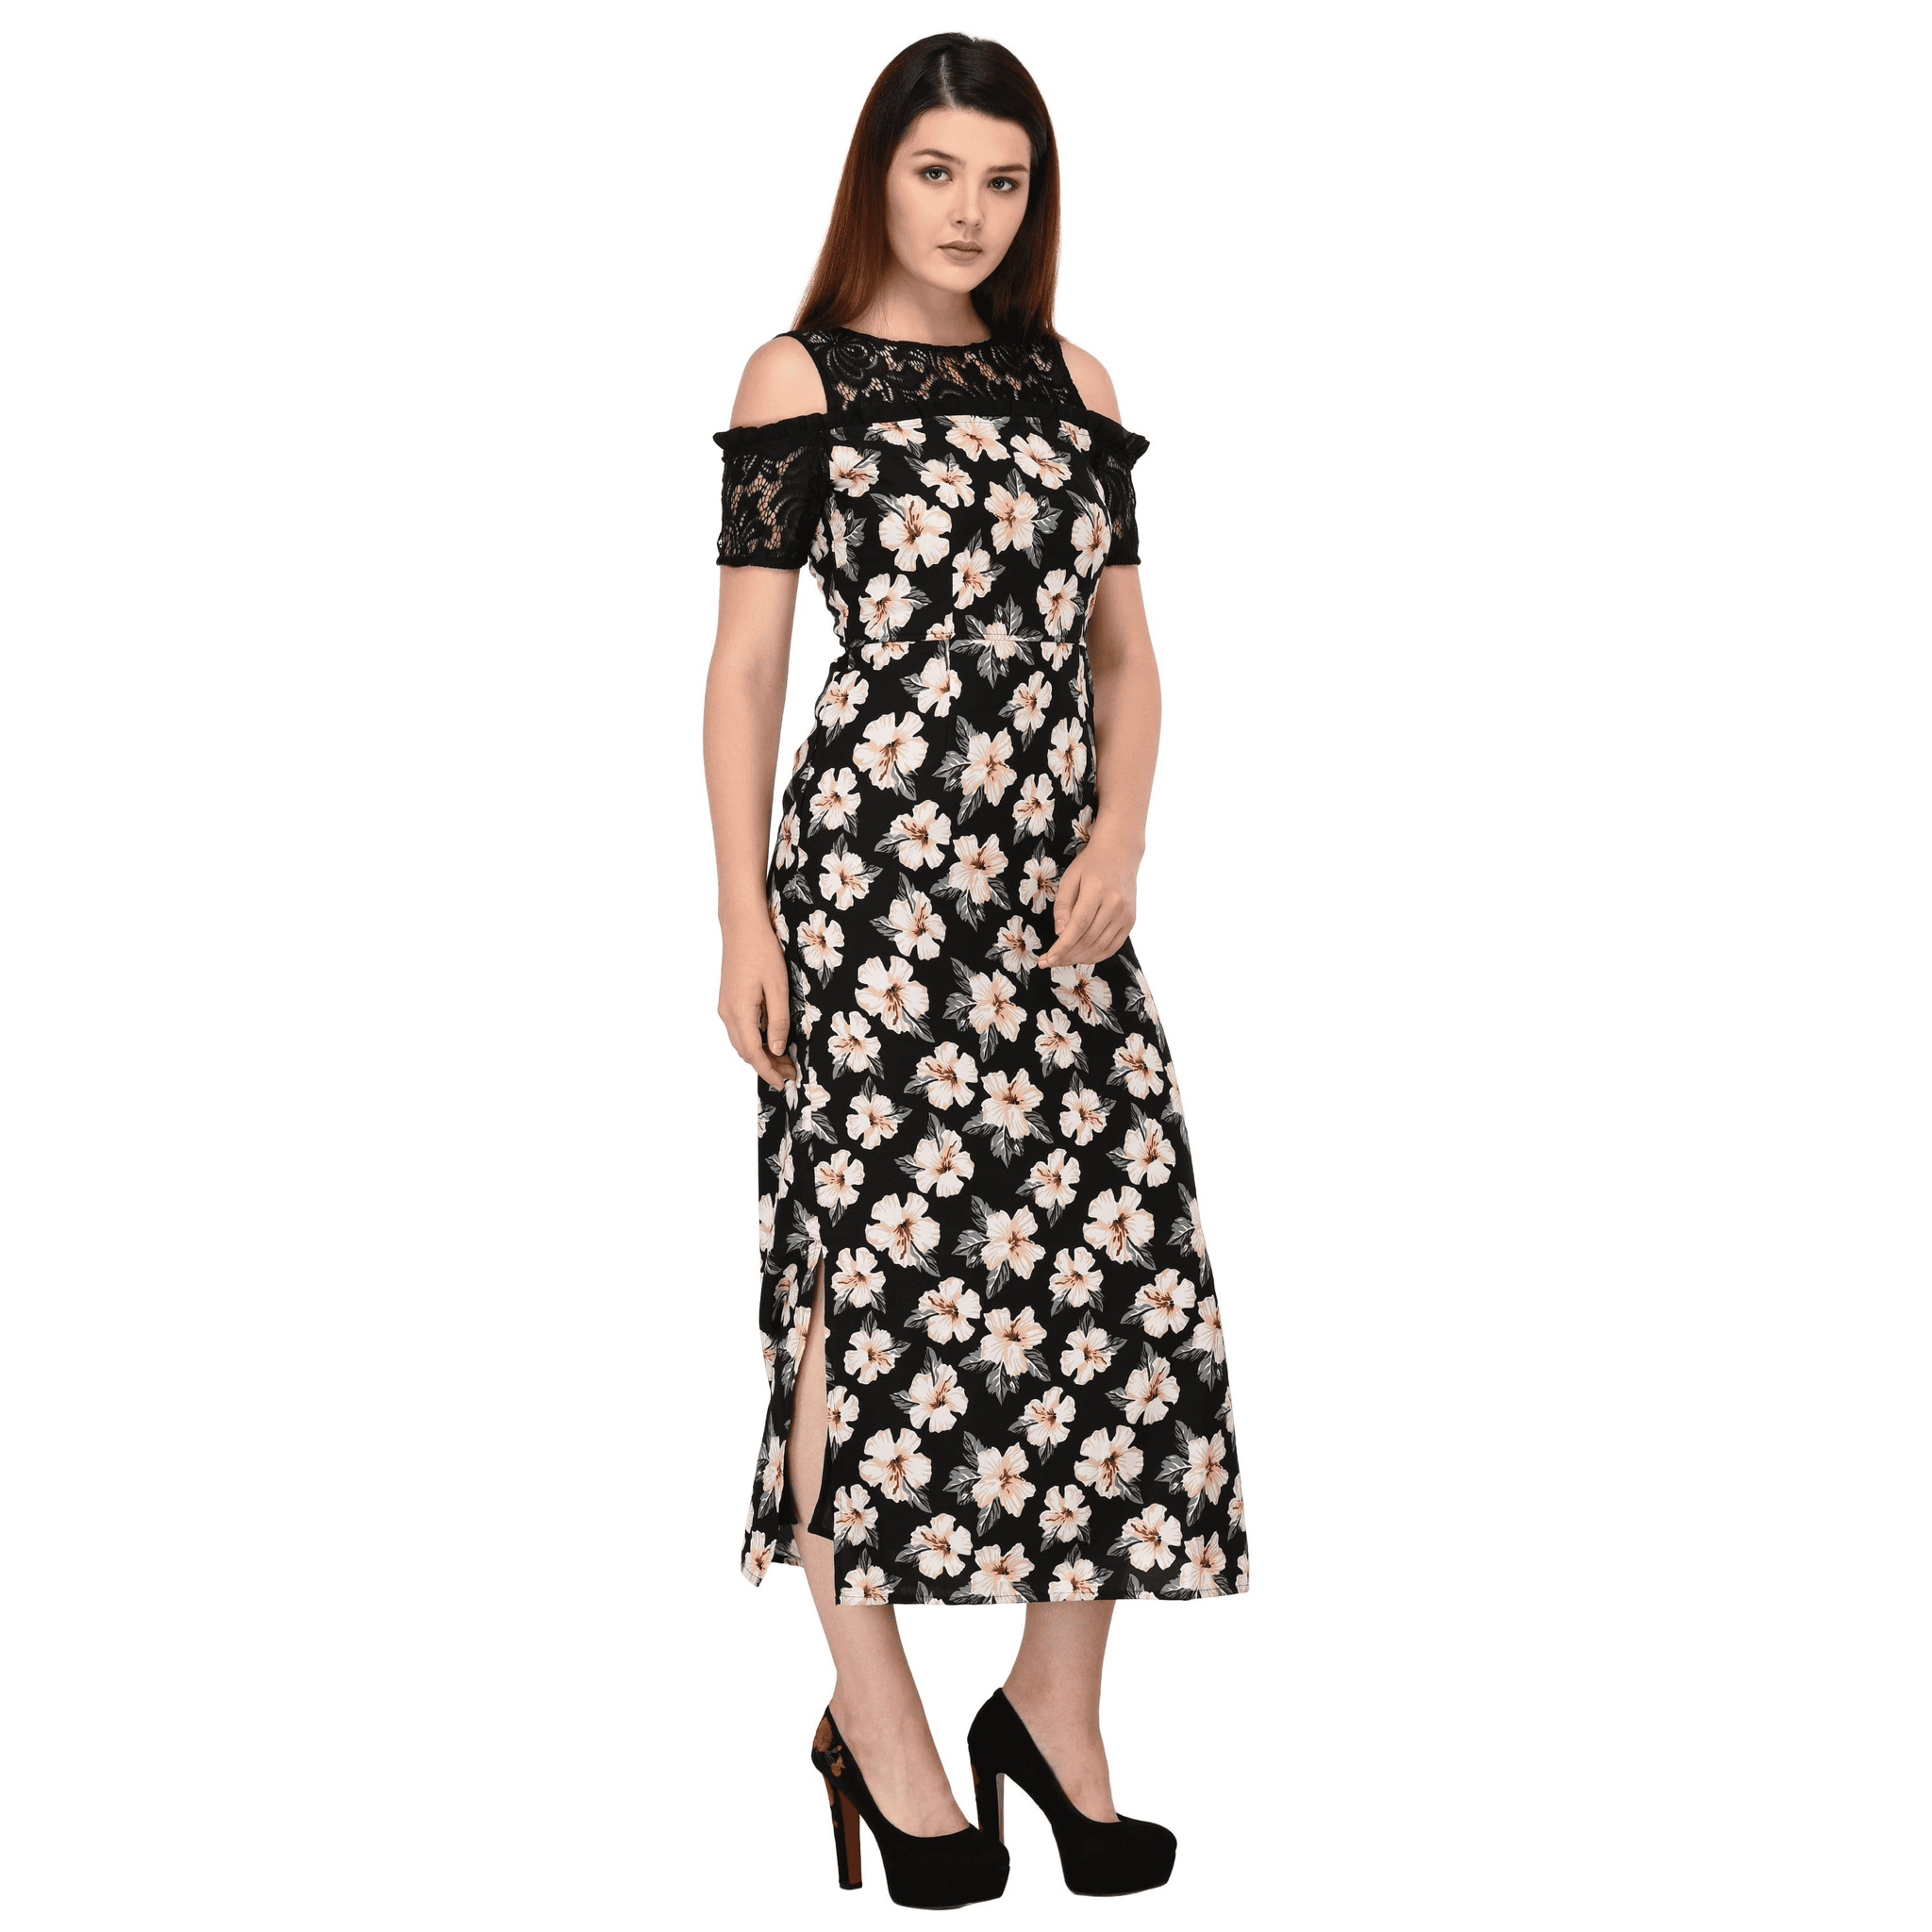 Floral Lace Long Dress Black - NIXX Clothing